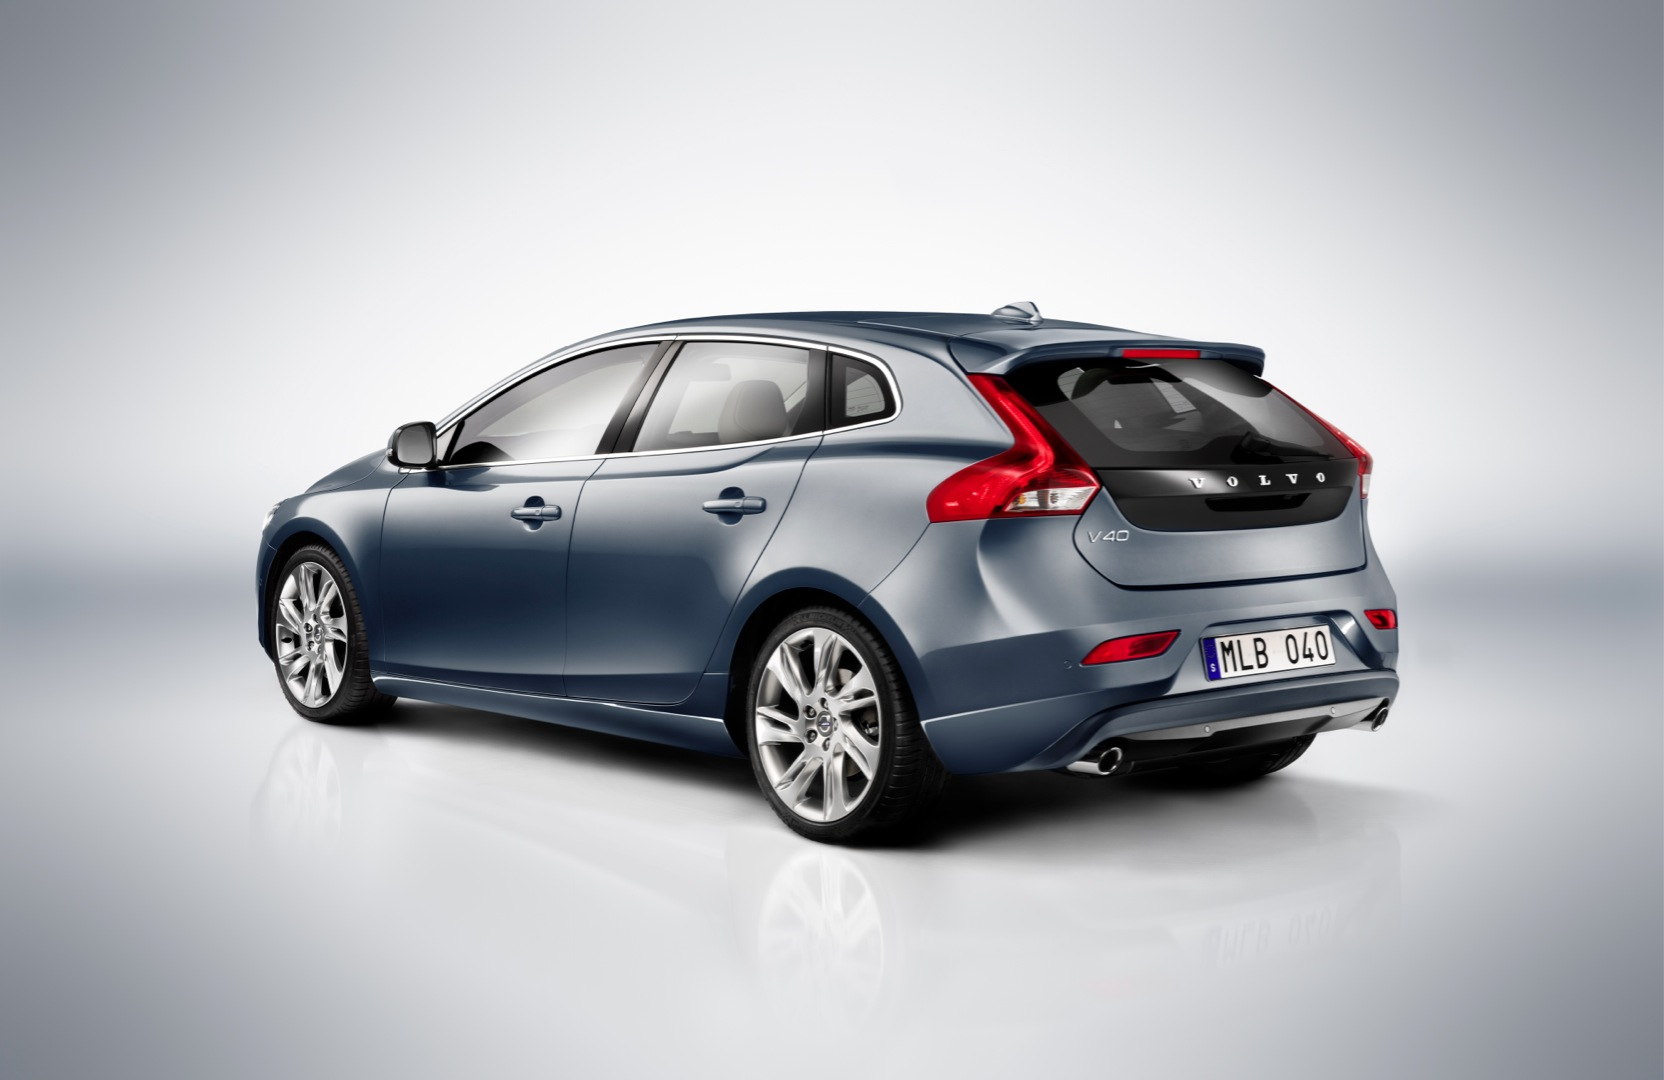 volvo v40 2012 2013 2014 2015 2016 2017 autoevolution. Black Bedroom Furniture Sets. Home Design Ideas